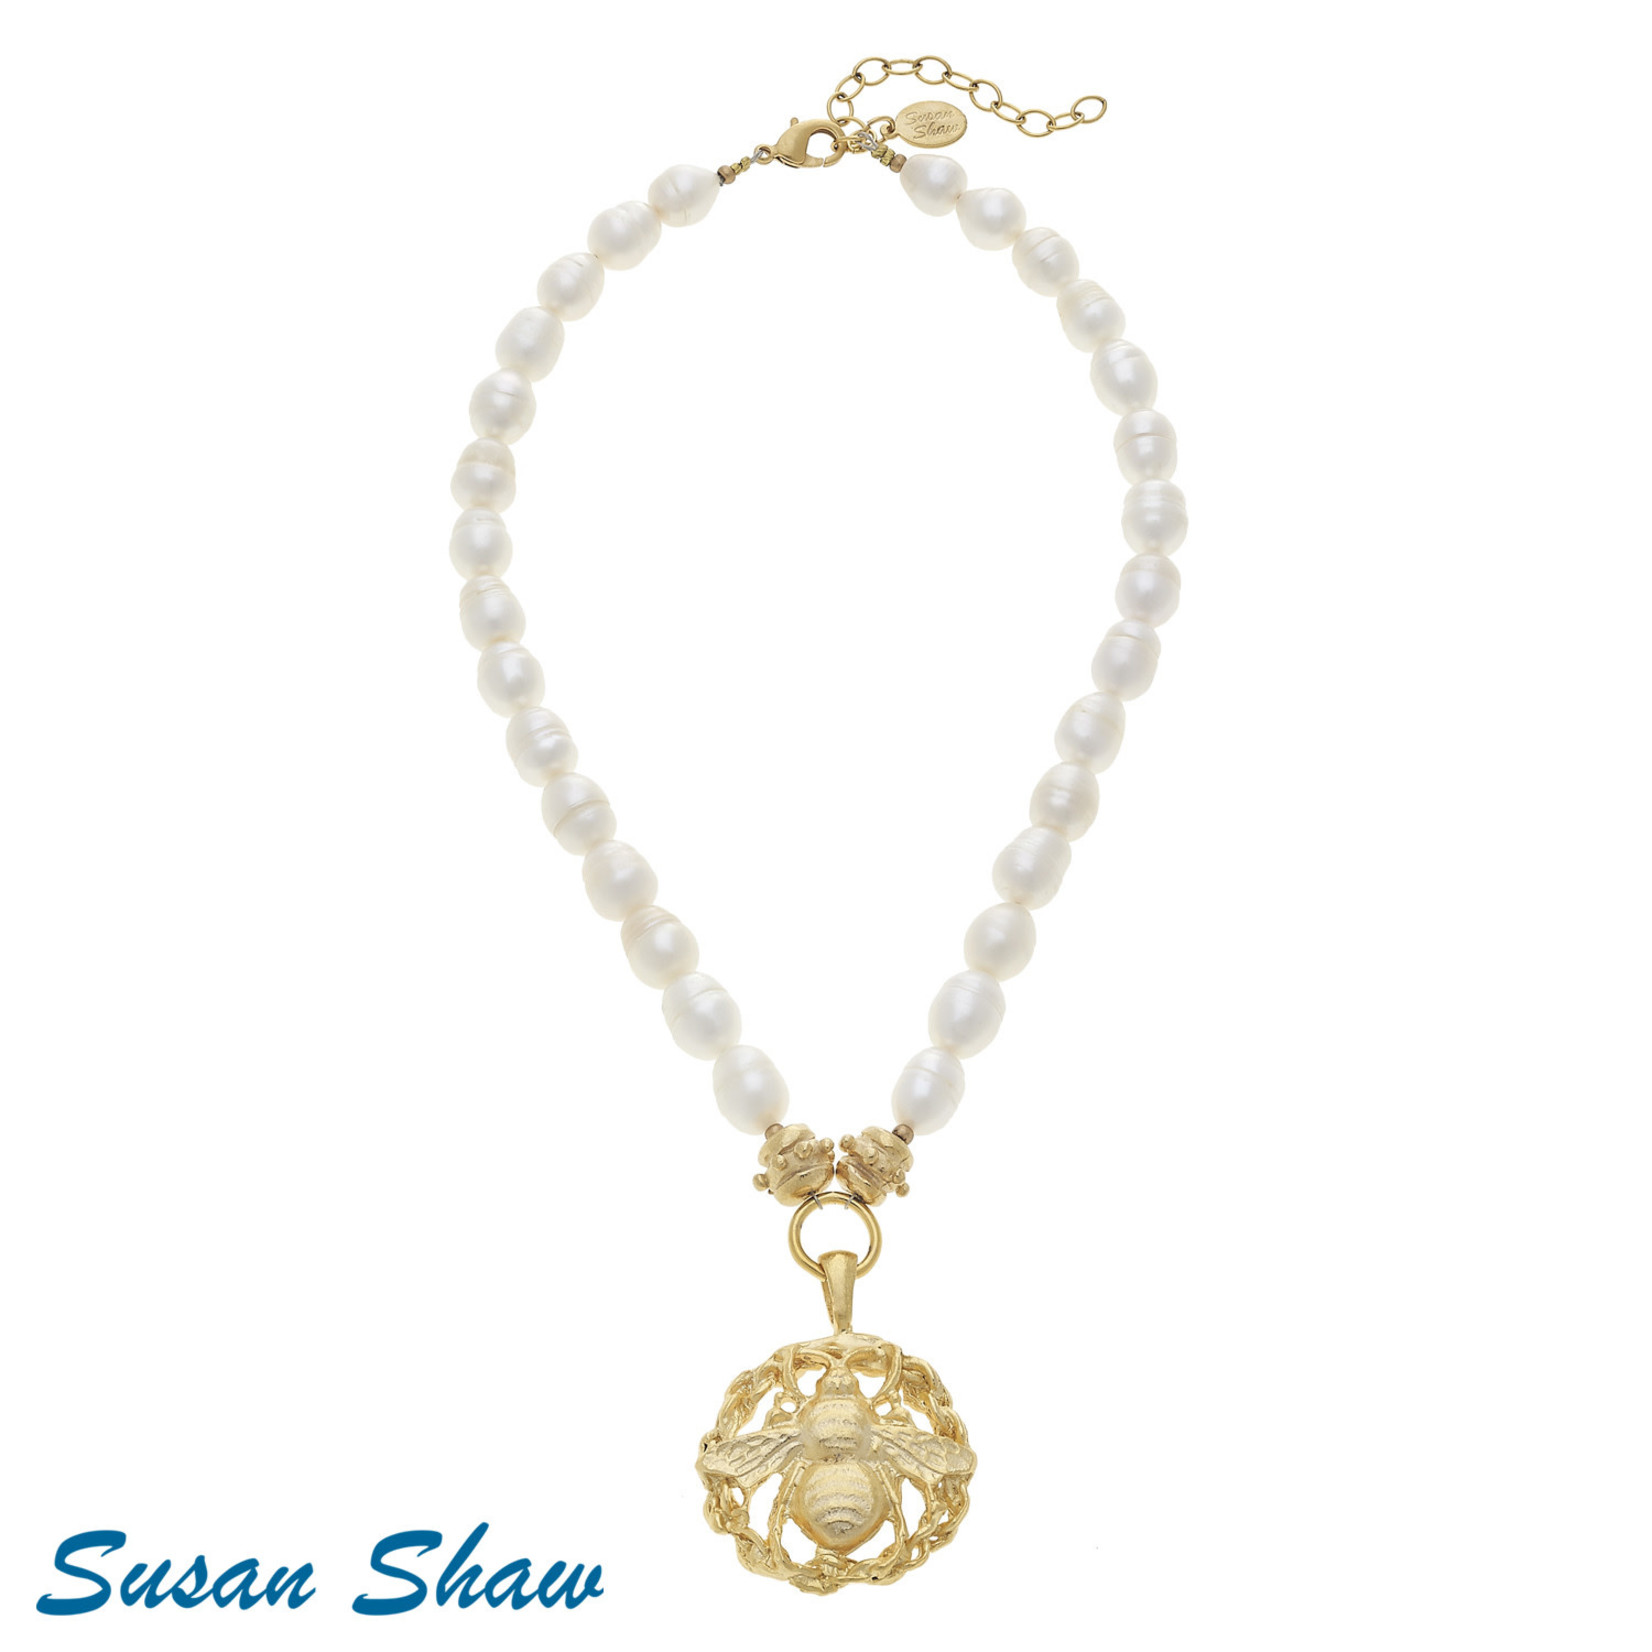 Susan Shaw Susan Shaw Bee Pendant on Pearl Necklace